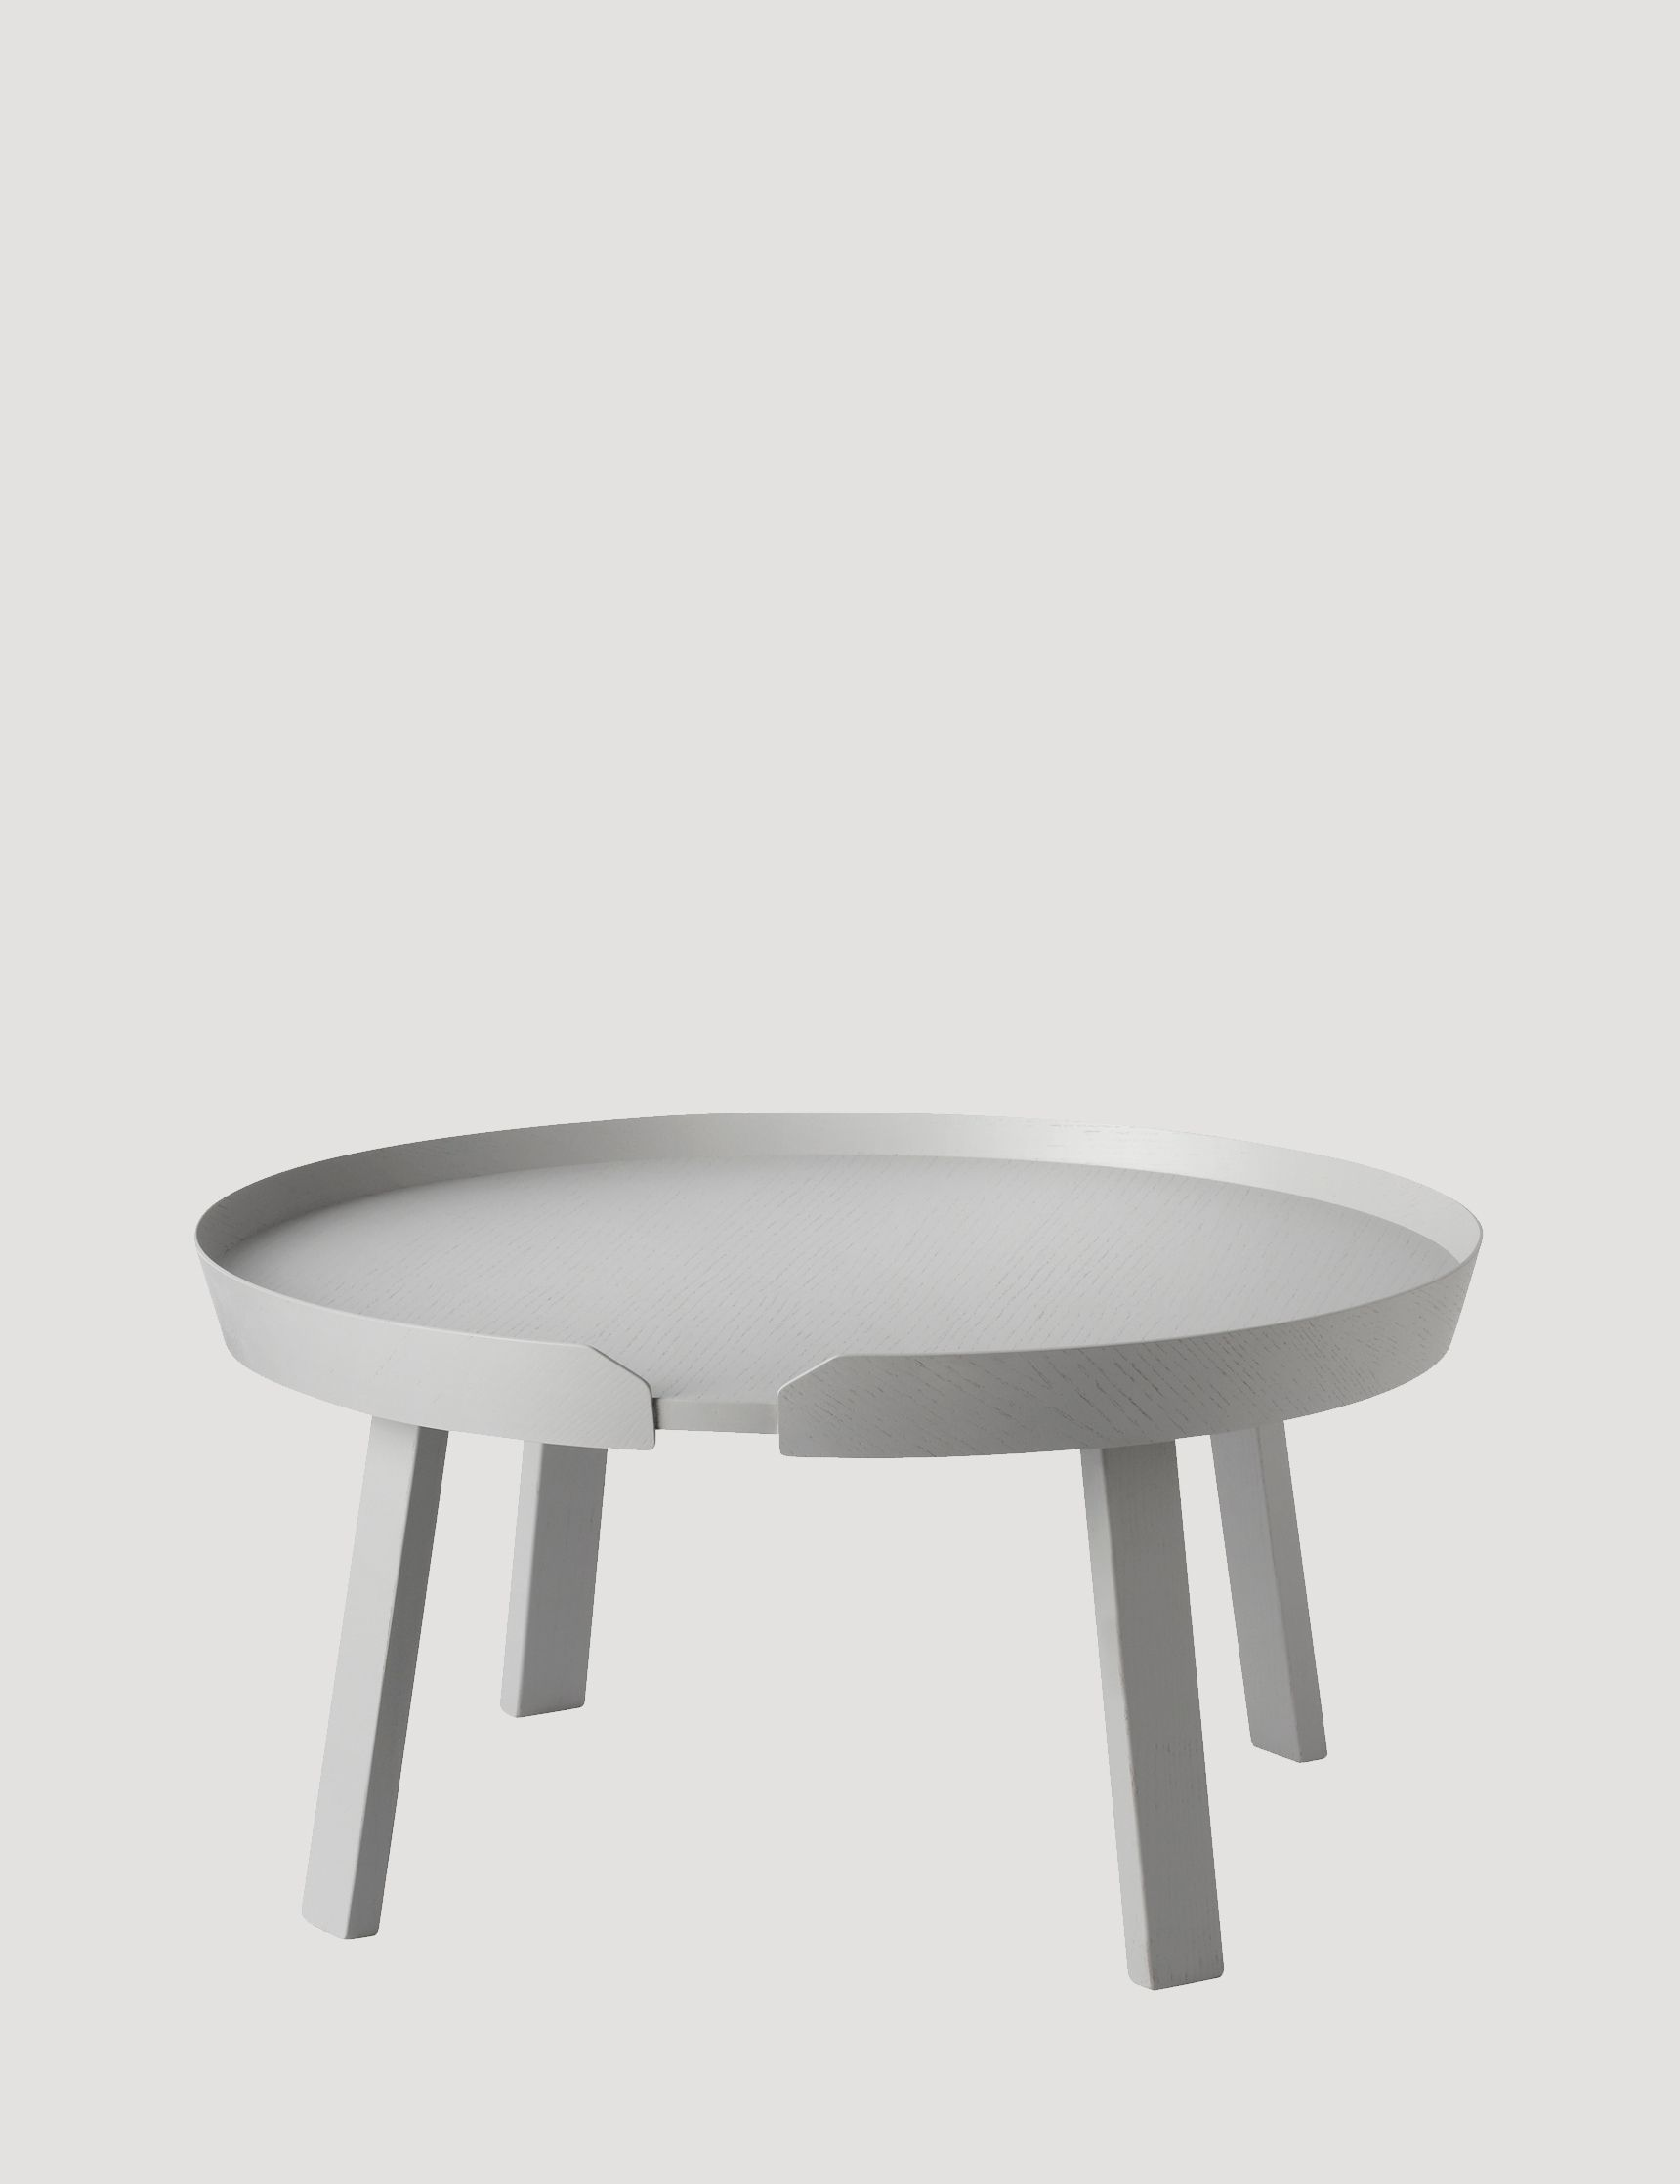 Around – Modern Scandinavian Design Sofa Table by Muuto Muuto